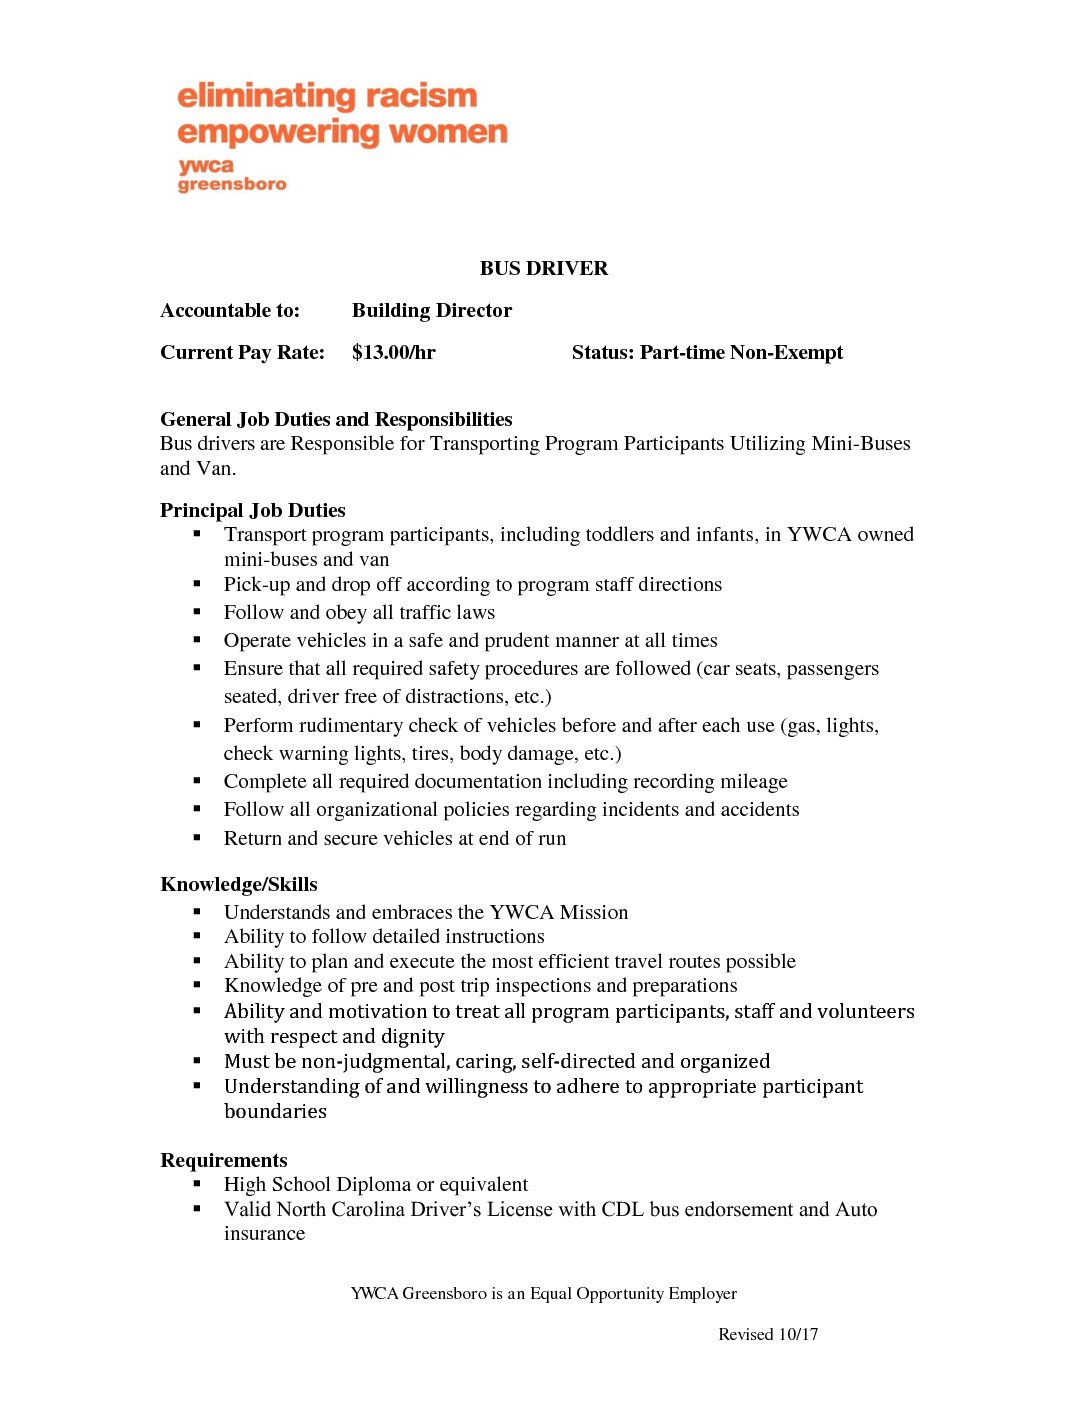 Bus Driver Duties | Bus Driver Job Description Ywca Of Greensboro Eliminating Racism